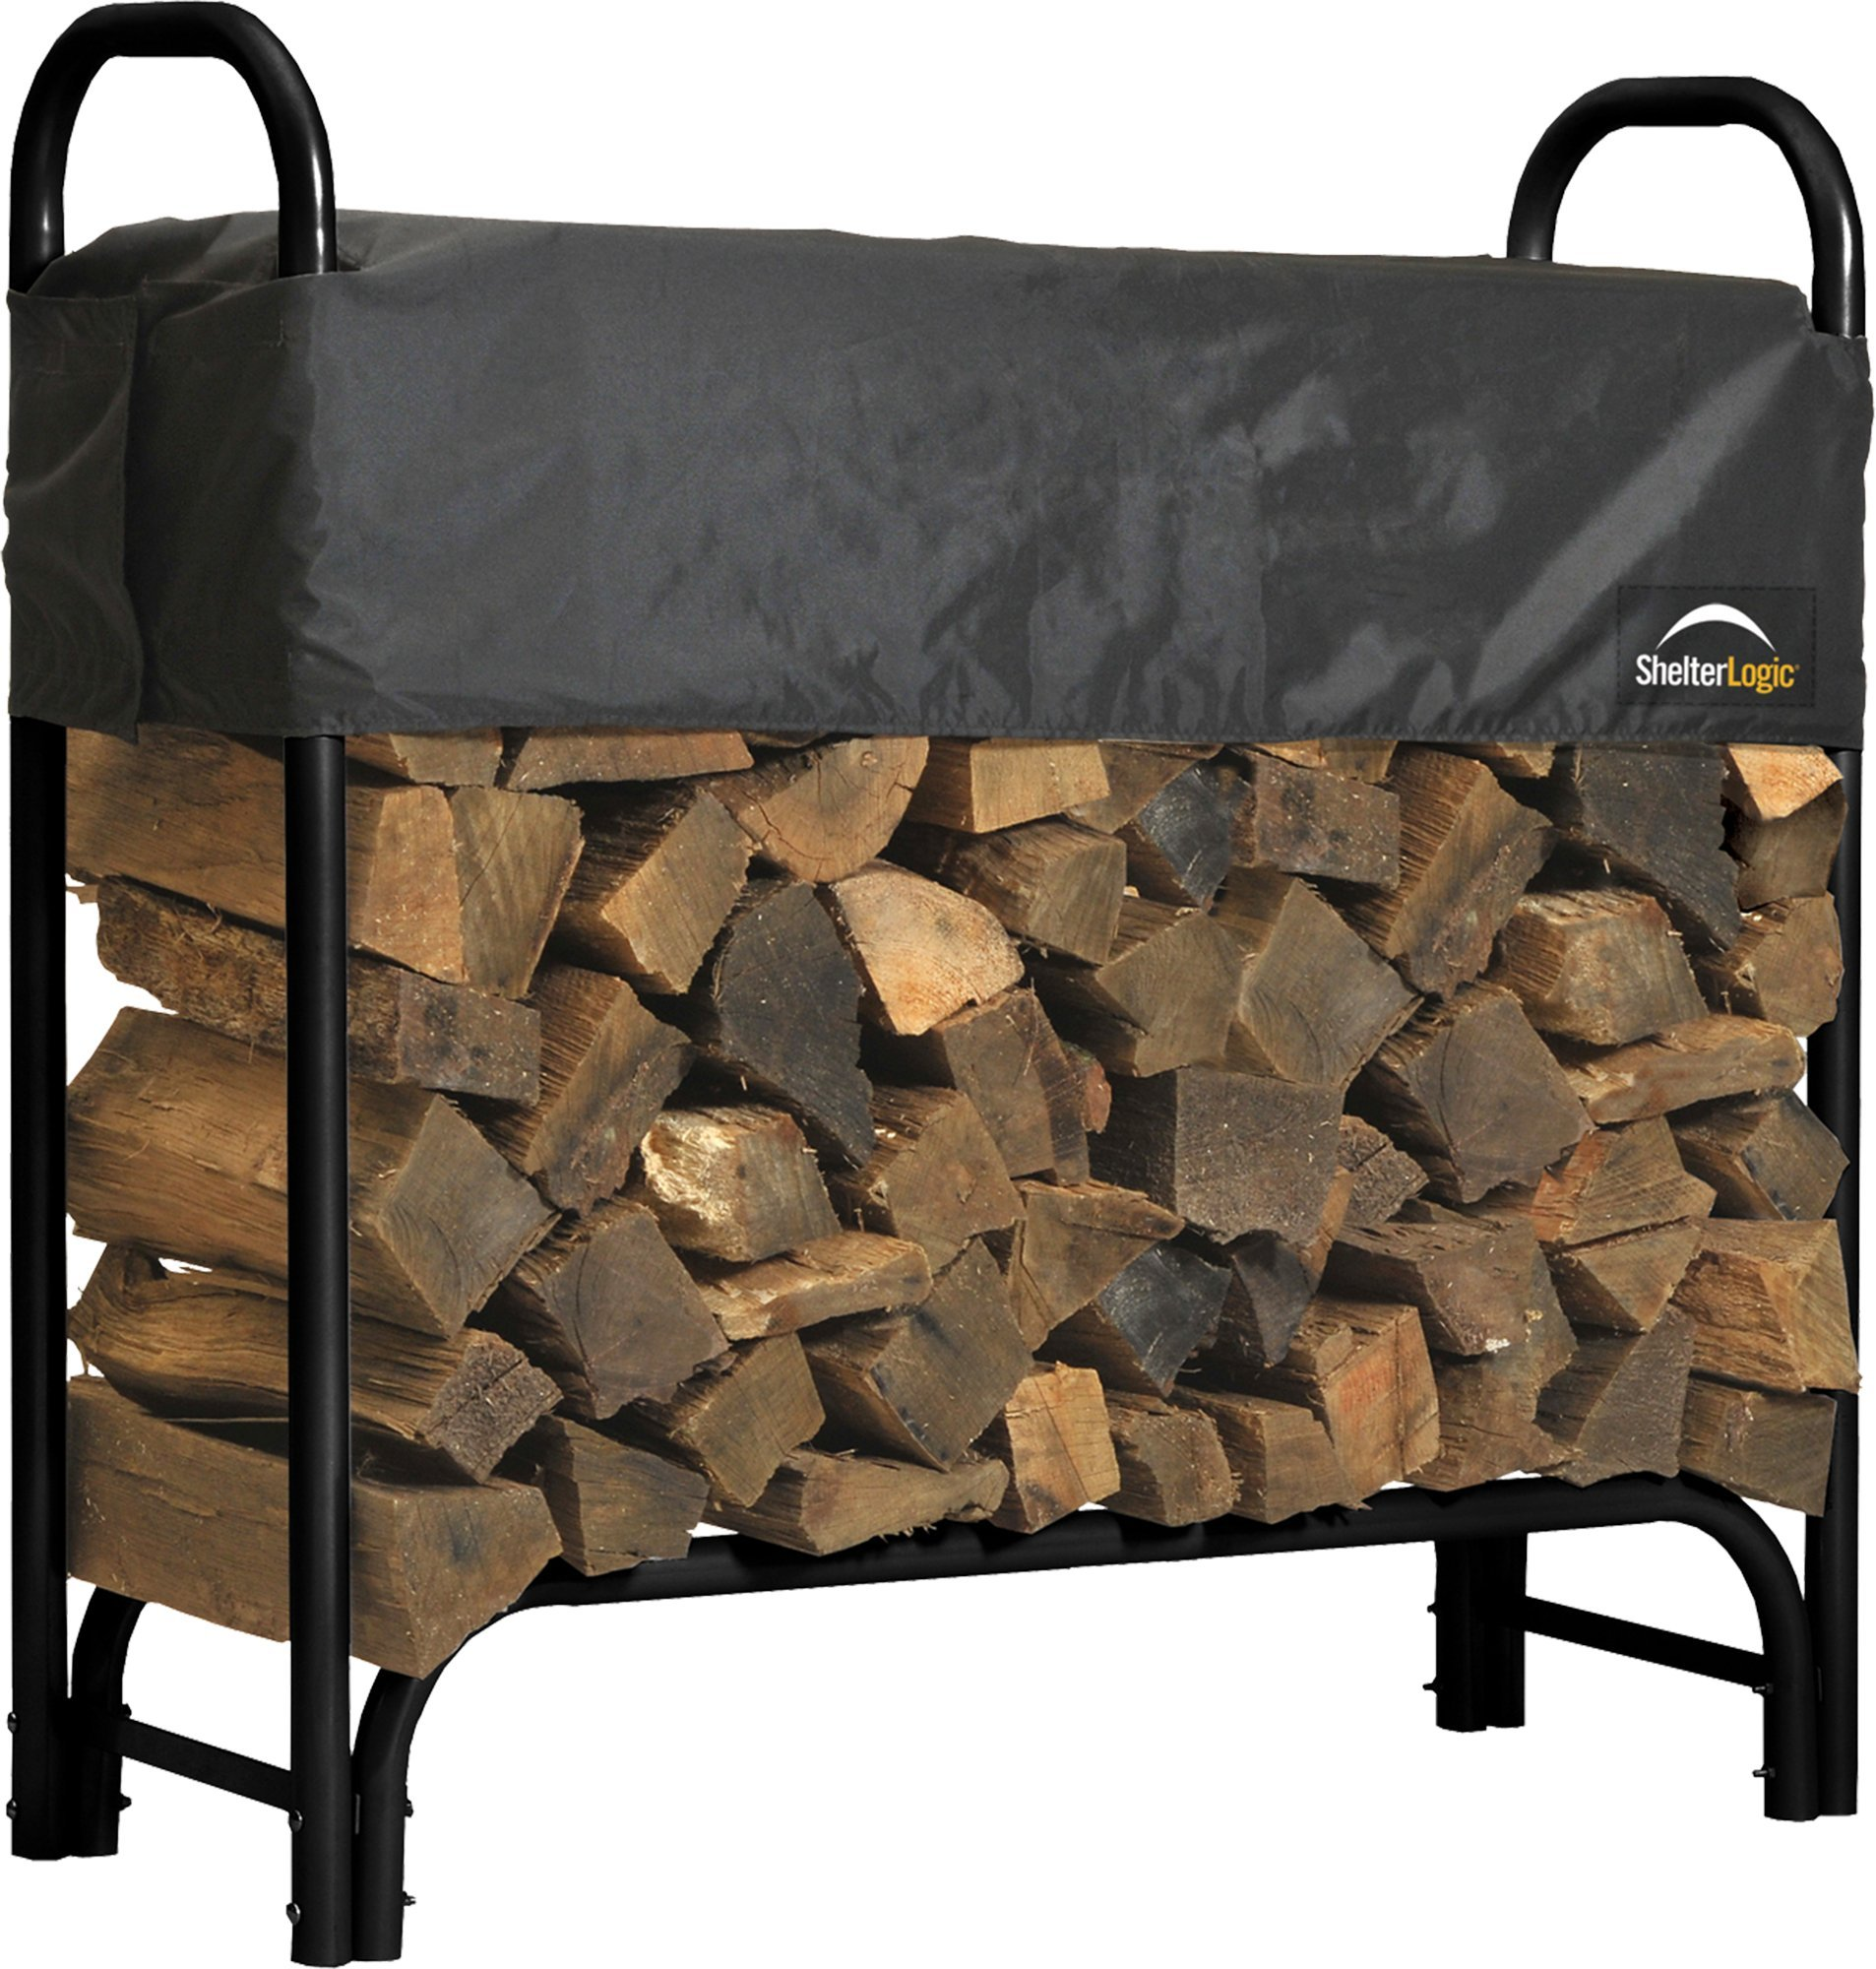 ShelterLogic 4' Adjustable Heavy Duty Outdoor Firewood Rack with Steel Frame Construction and  Water-Resistant Cover by ShelterLogic